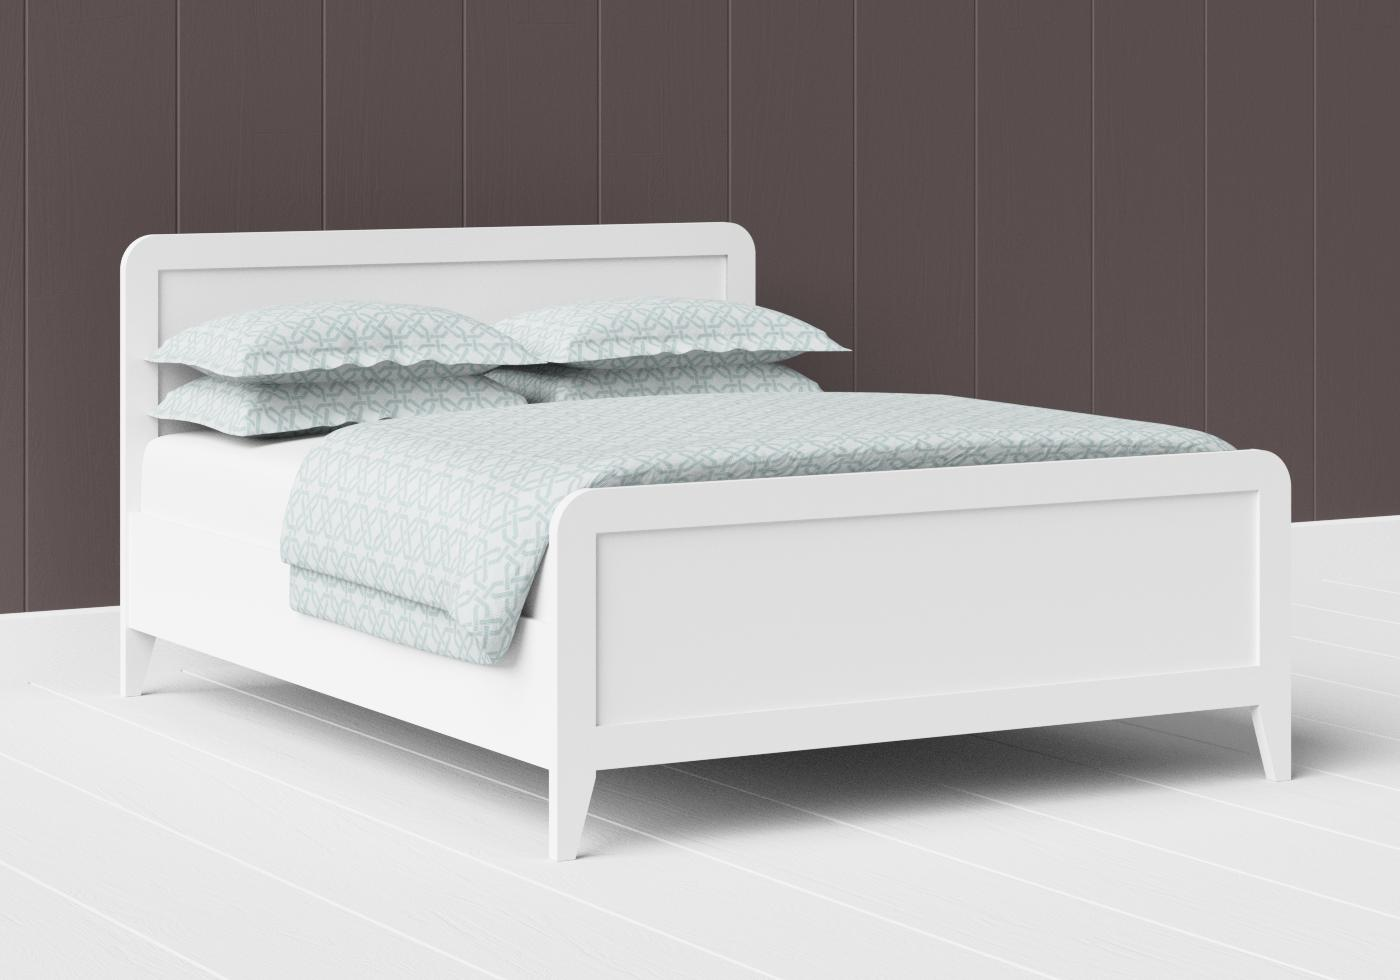 Keats low footend painted wood bed in satin white